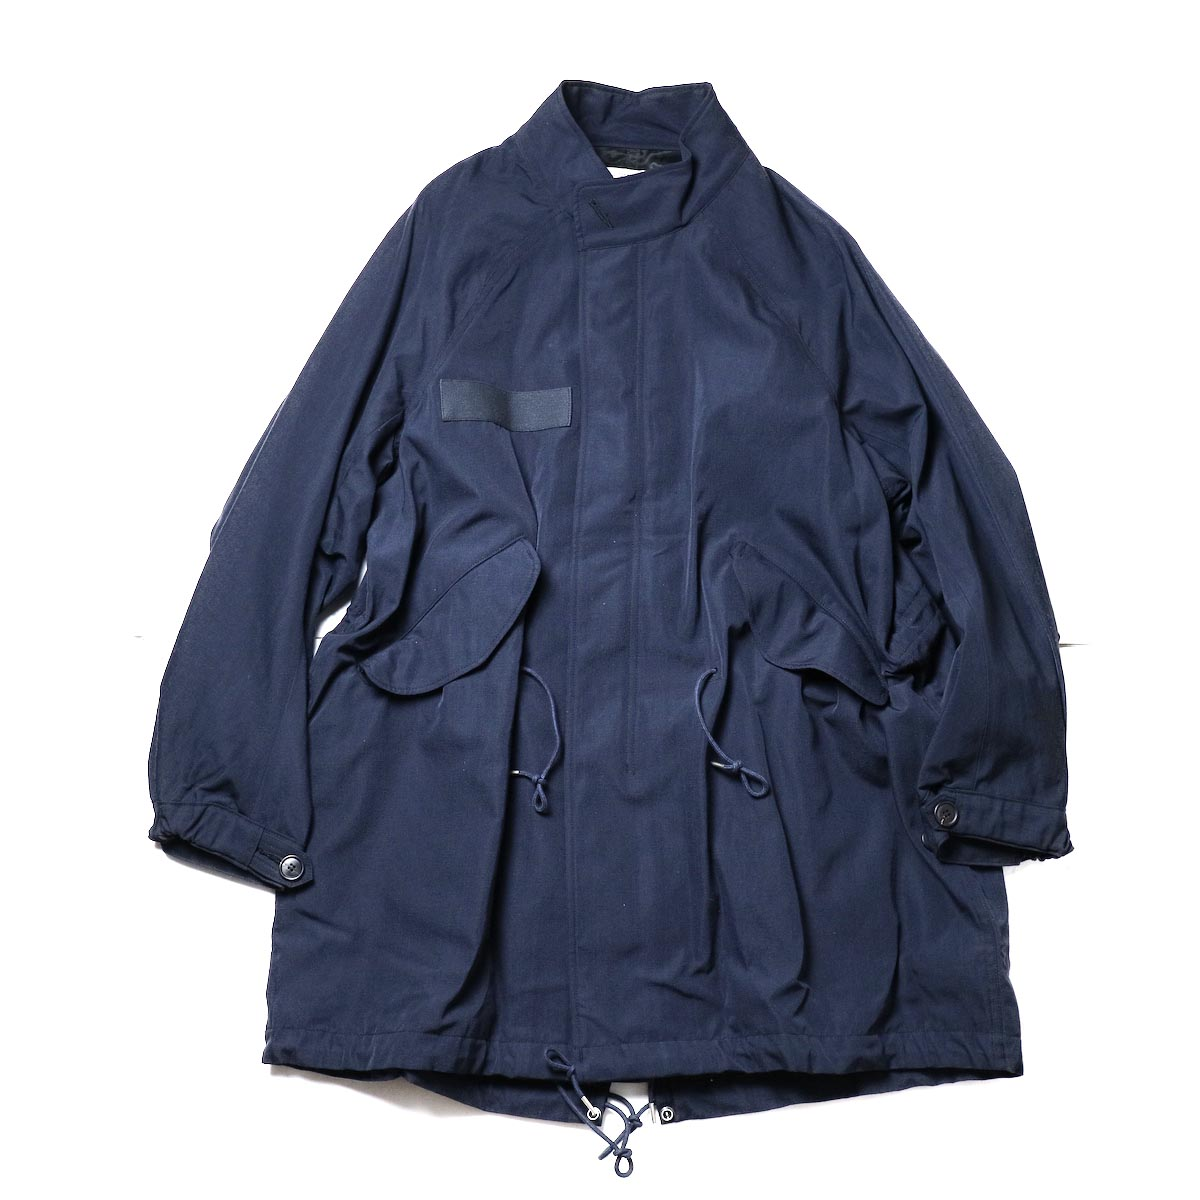 visvim / SIX-FIVE FISHTAIL PARKA (W/L) (Navy)正面